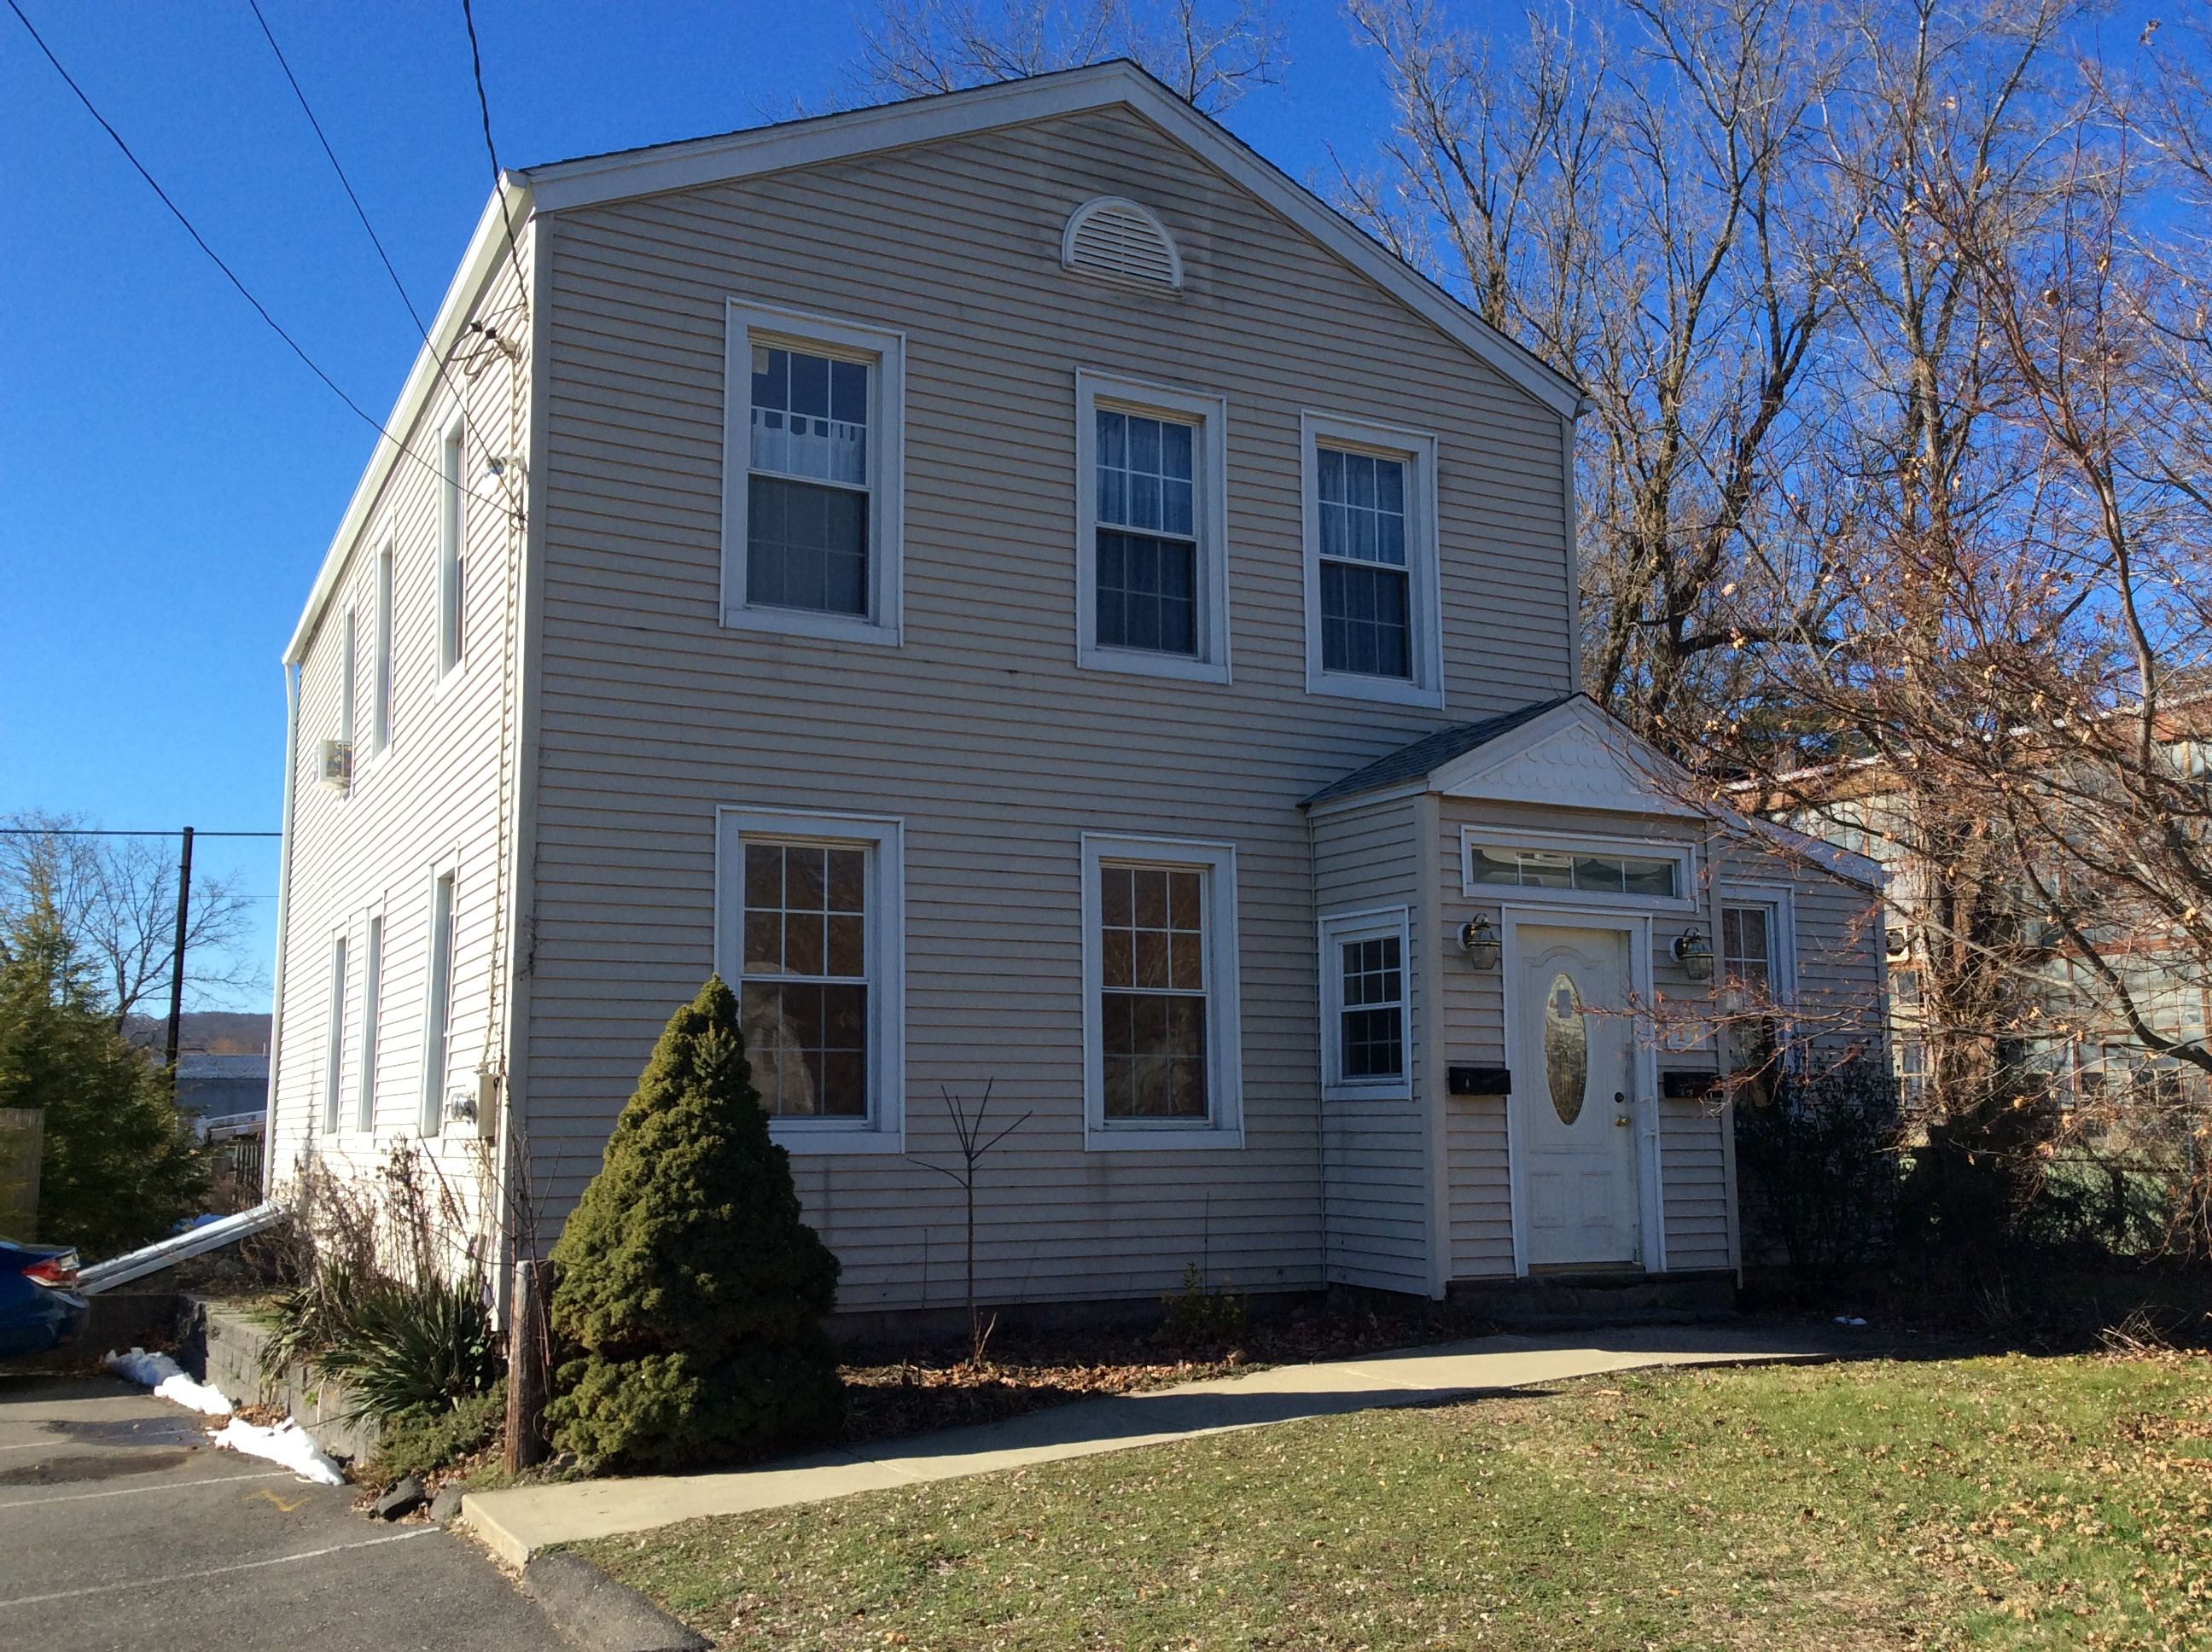 Condominium for Sale at First Level Condo Unit 17 Taylor Avenue A Bethel, Connecticut, 06801 United States